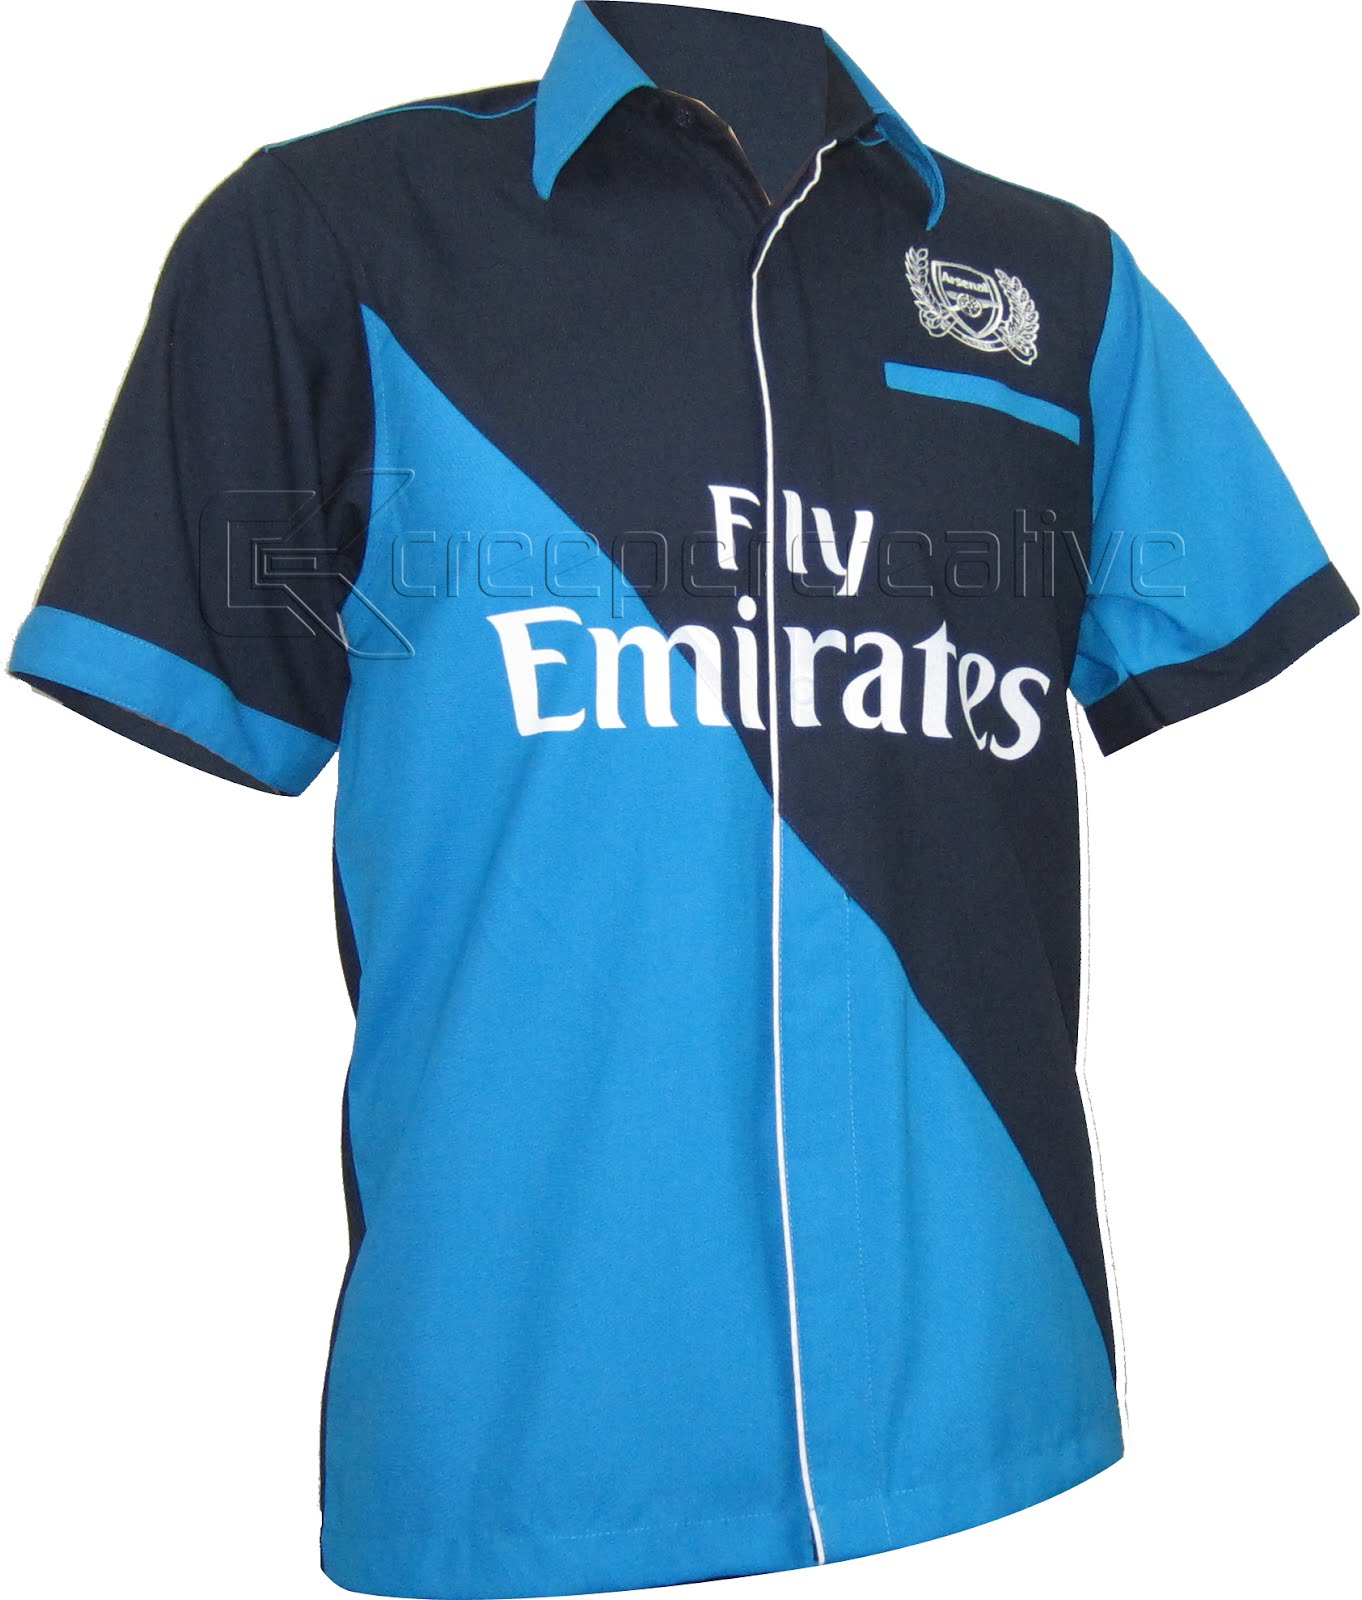 b2c2b53c Corporate Shirt Arsenal Malaysia | Corporate Shirts